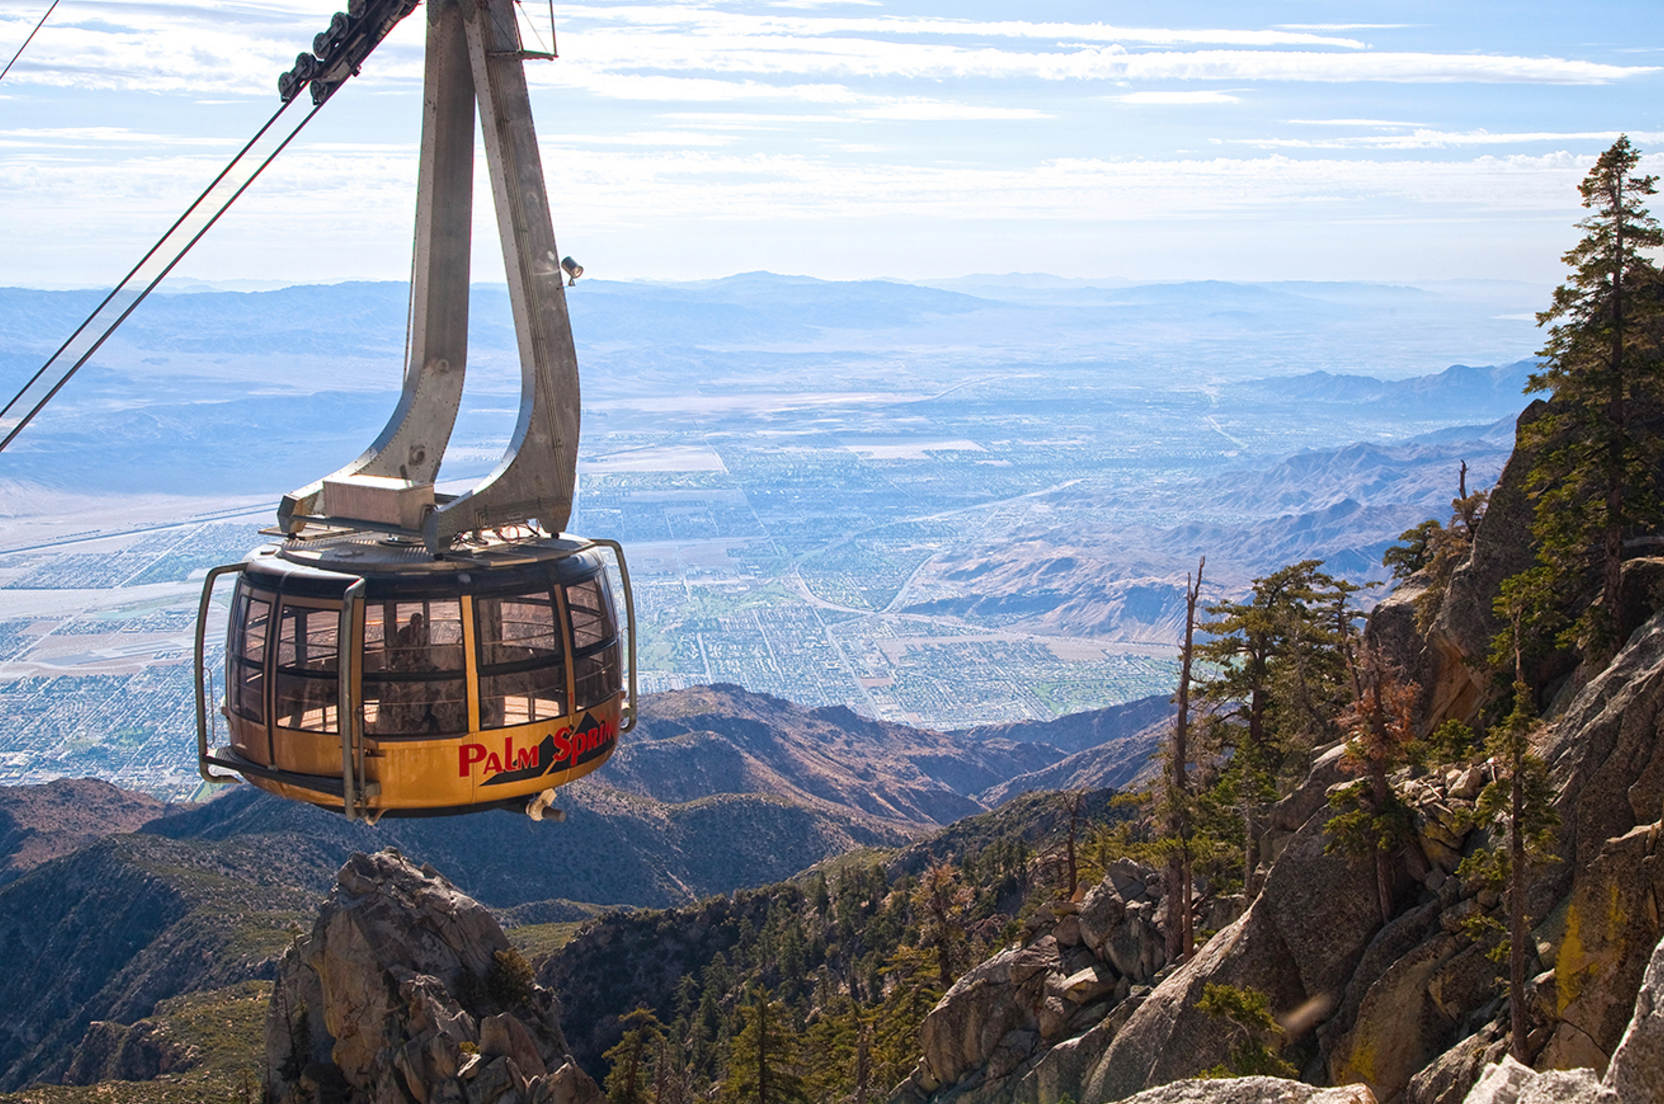 A breathtaking journey on the world's largest rotating tram.